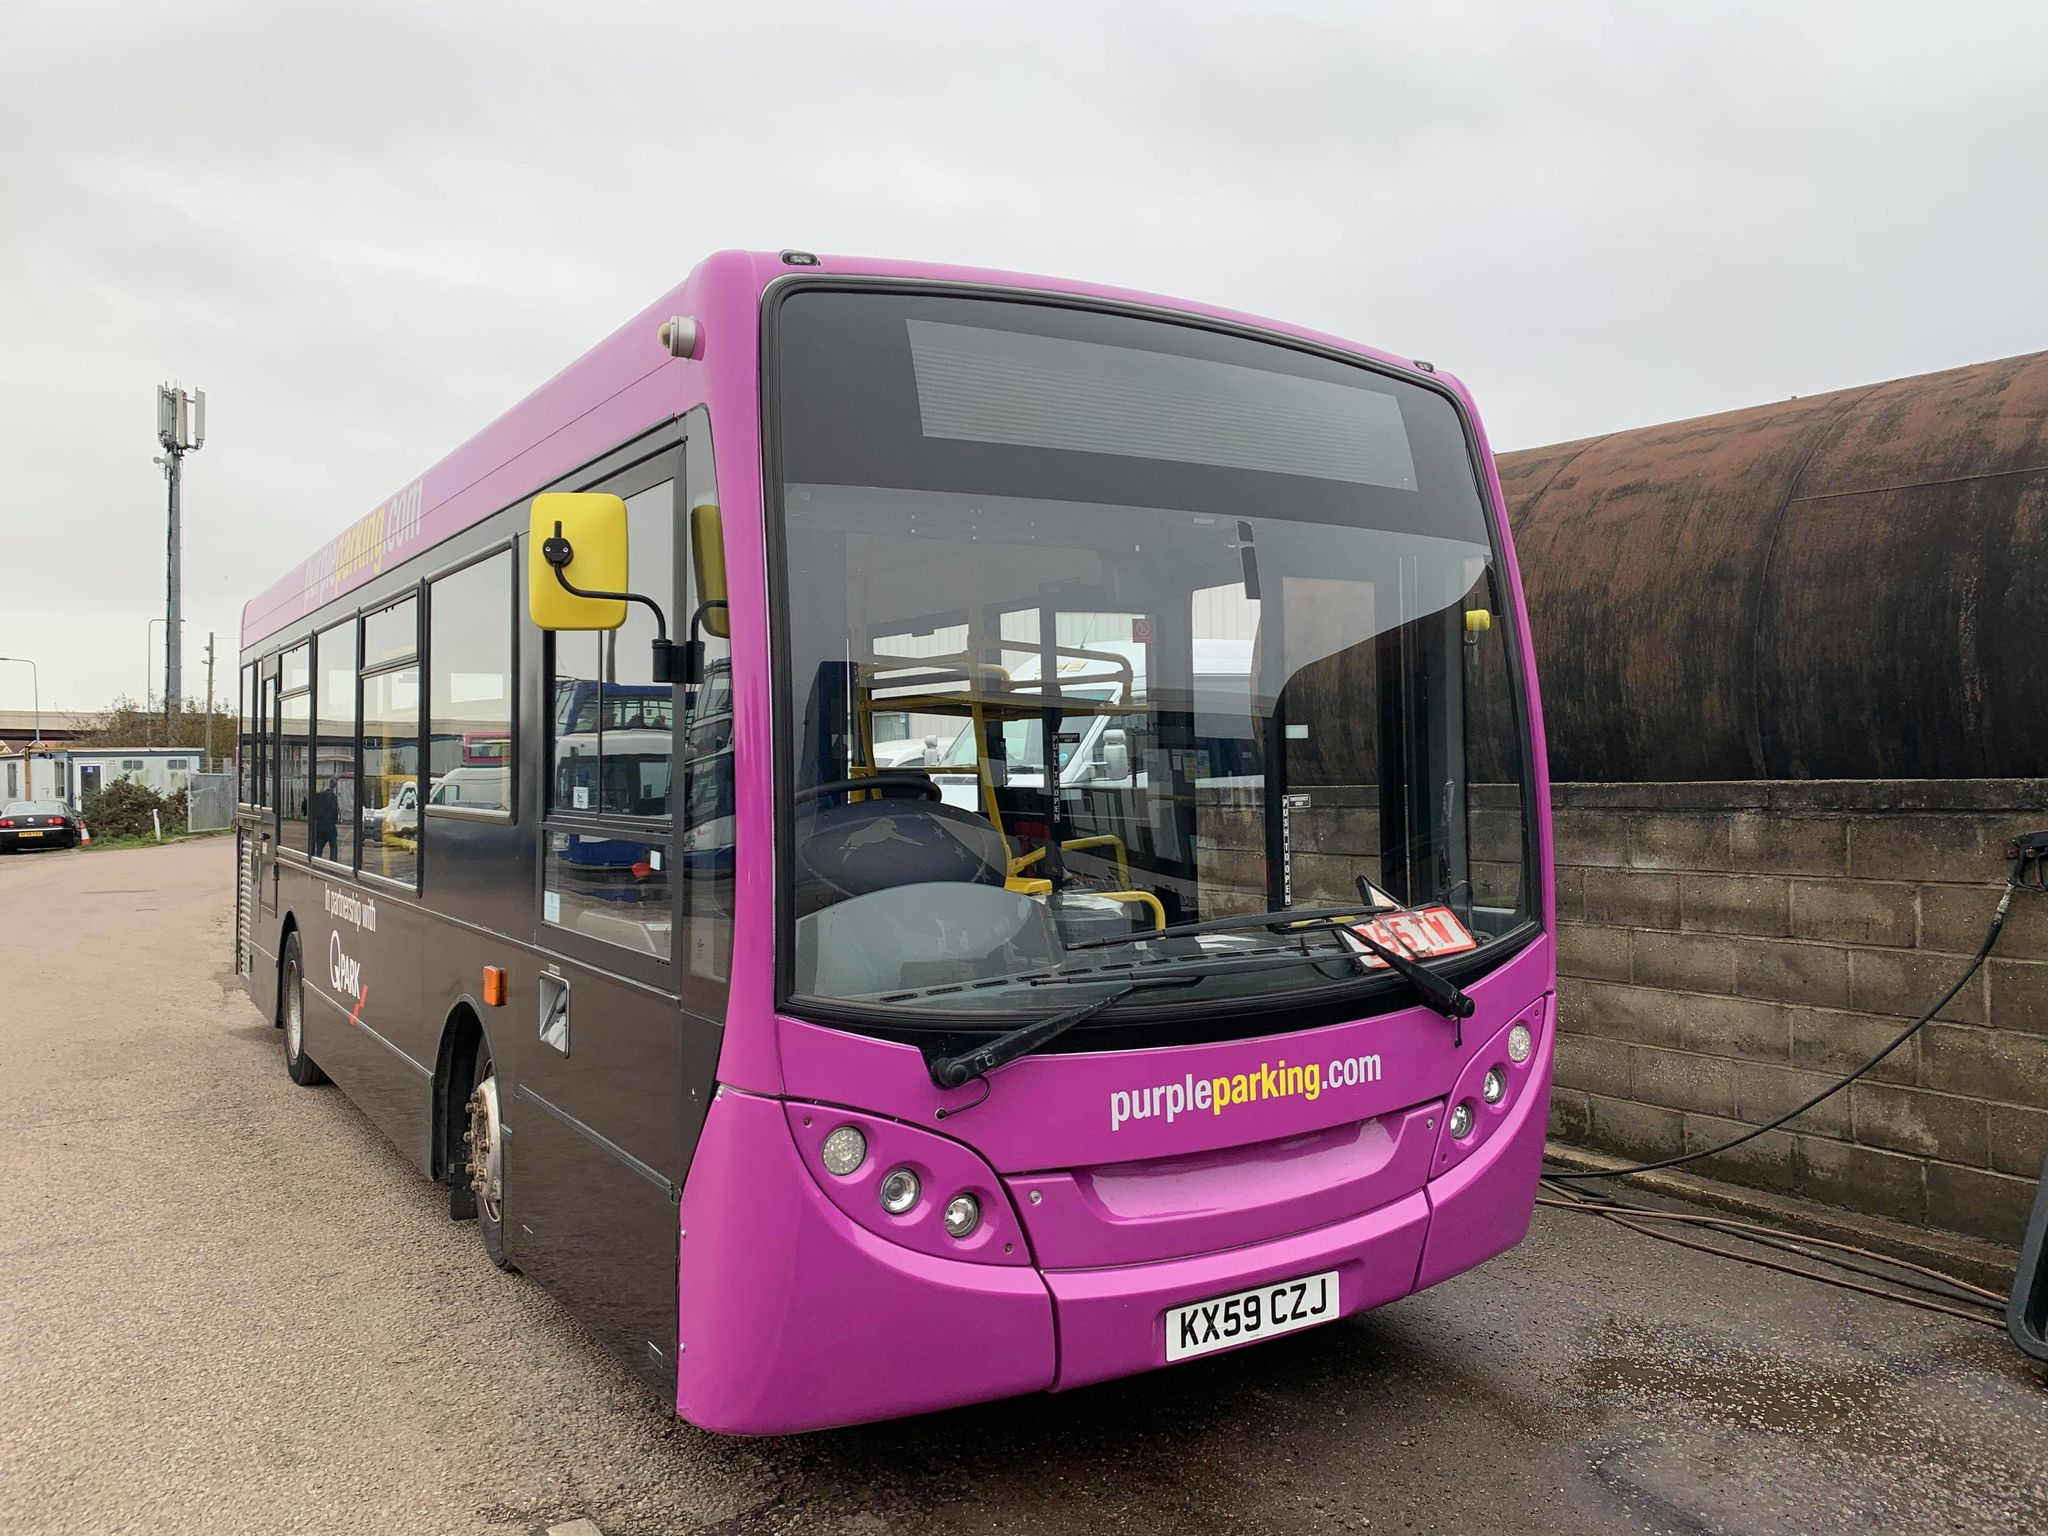 KX59CZJ PANTHER EX PURPLE PARKING (PARKESTON DEPOT) 12-20 (S BARHAM)